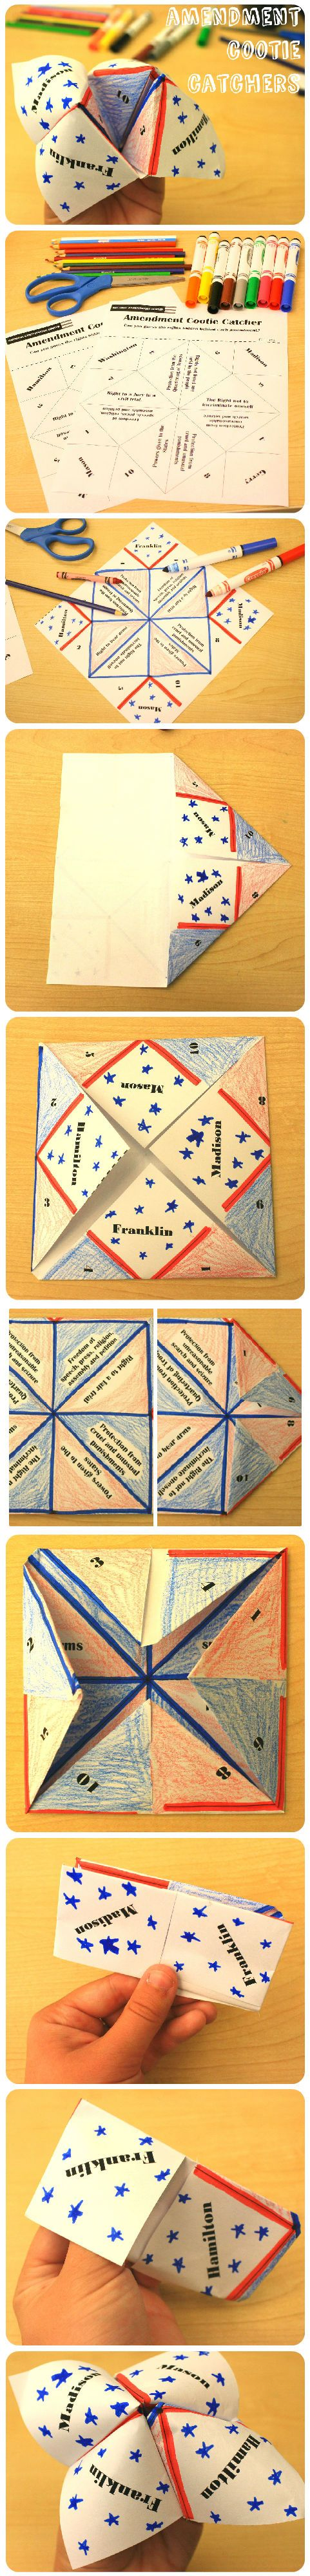 This clever twist on the classic cootie catcher tests your knowledge of the first 10 amendments. Can you guess the rights behind each amendment? #DIY #July4th